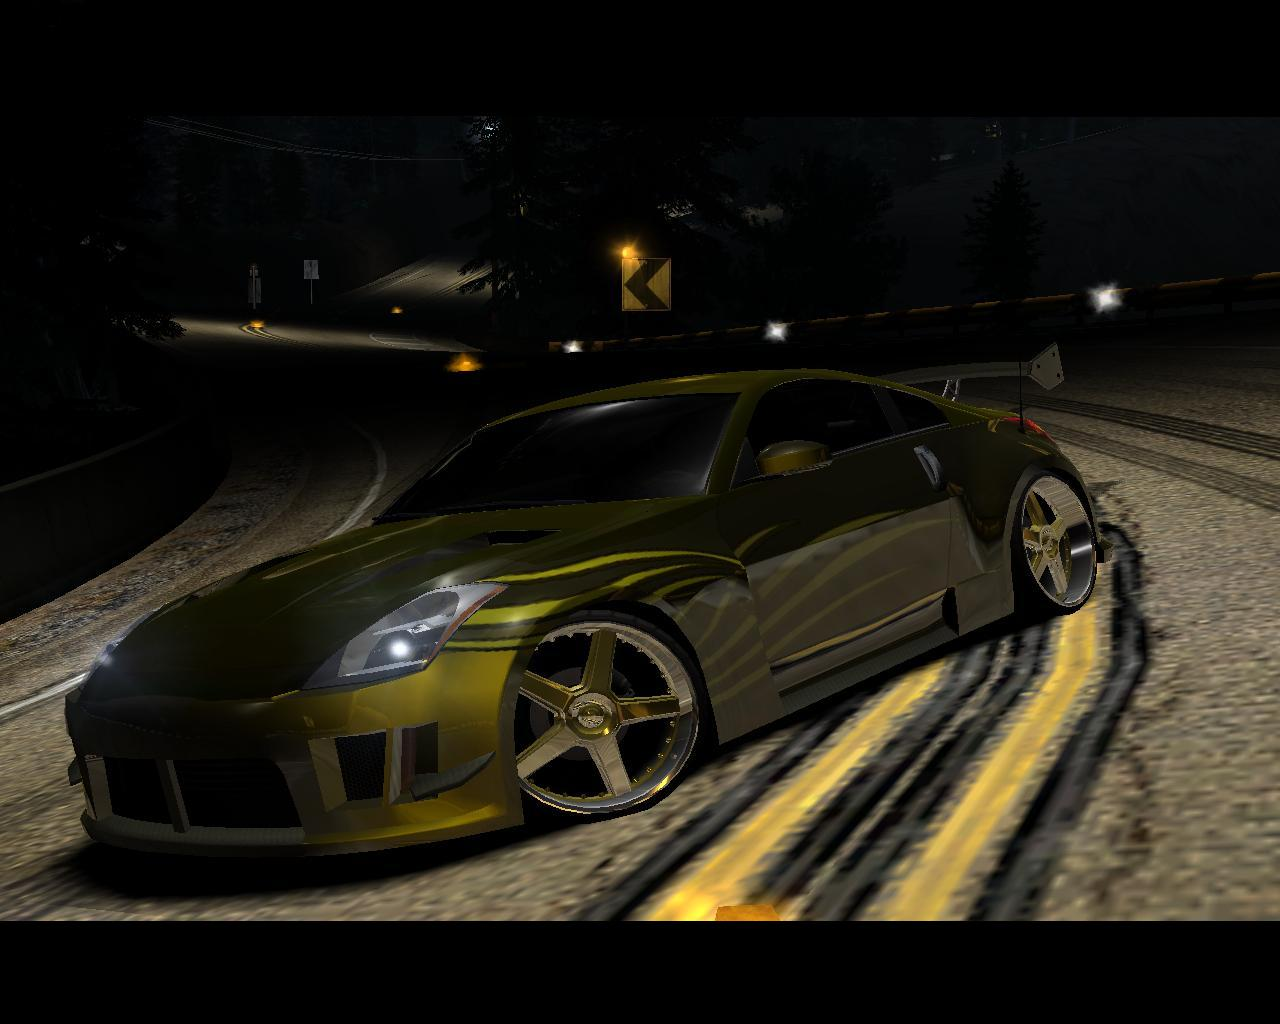 Nissan Tokyo Drift Wallpaper Image Gallery Hcpr